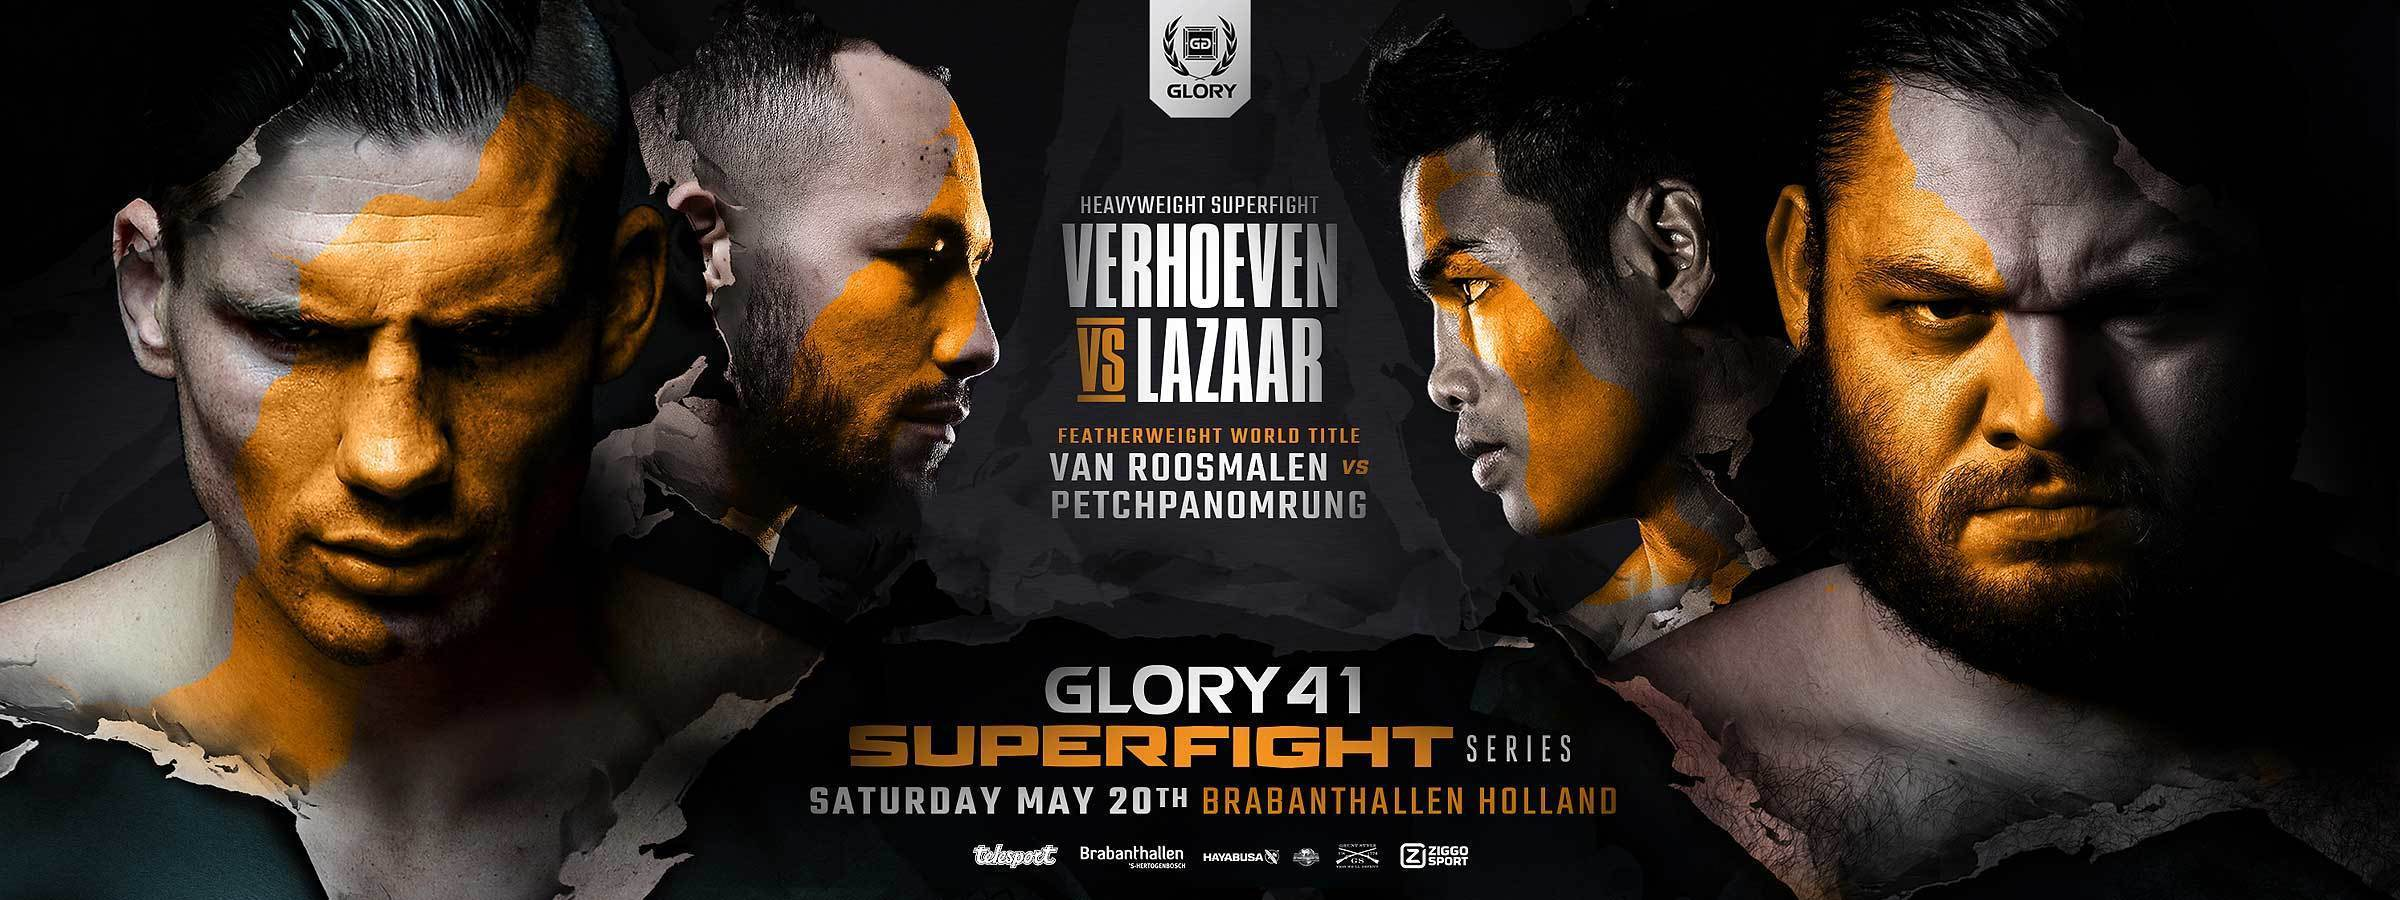 GLORY 41 Holland